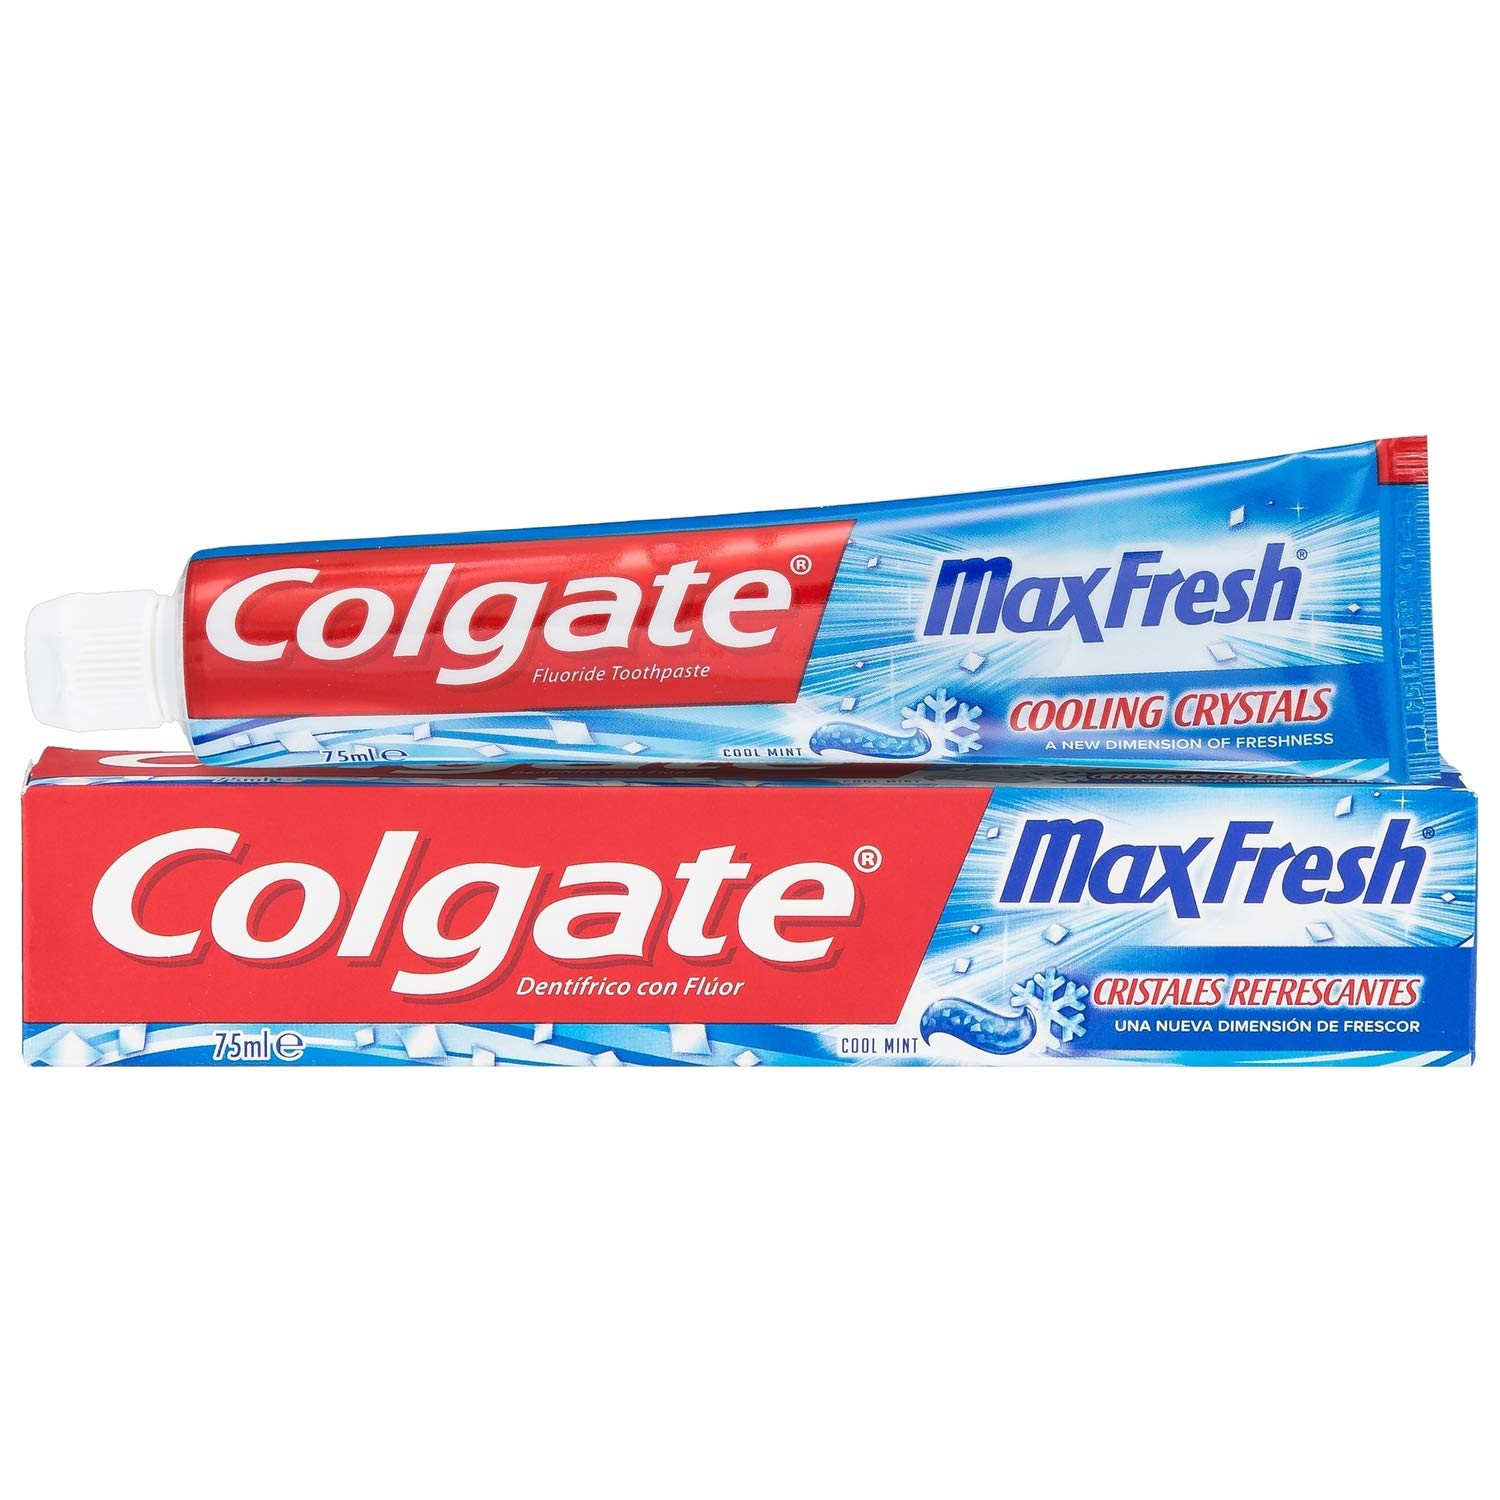 Colgate Max Fresh Crema Dental Azul 75ml, 1 unidad parent